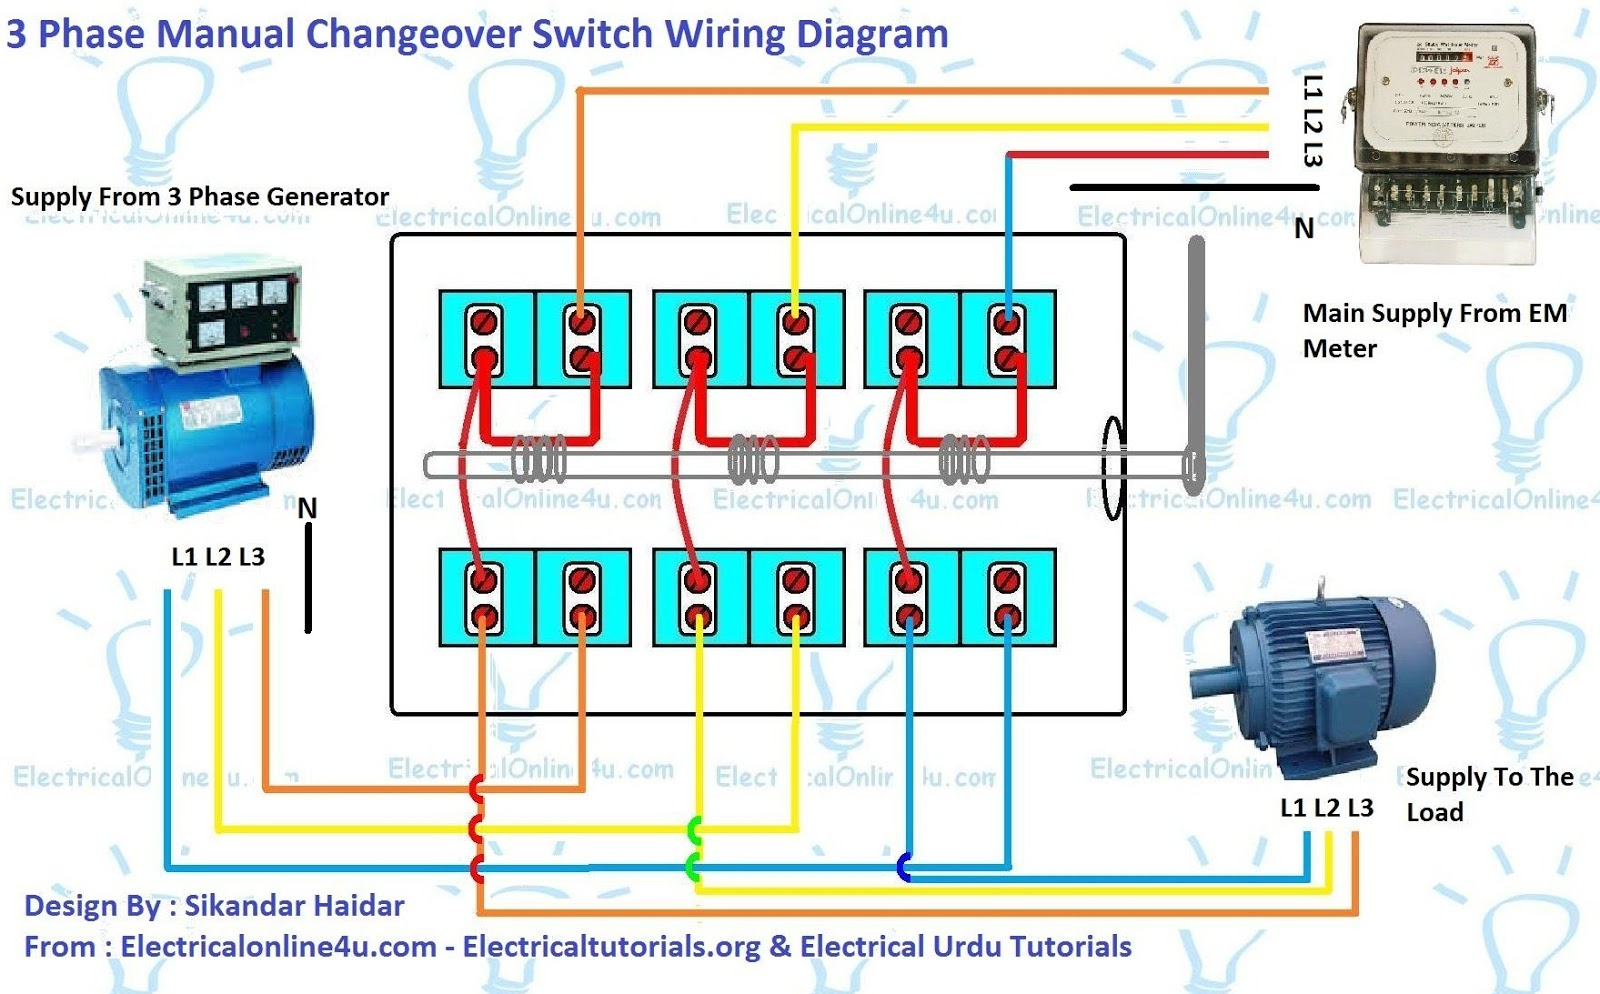 3%2Bphase%2Bmanual%2Bchangeover%2Bswitch%2Bwiring%2Bdiagram 3 phase manual changeover switch wiring diagram for generator 3 phase switch wiring diagram at edmiracle.co